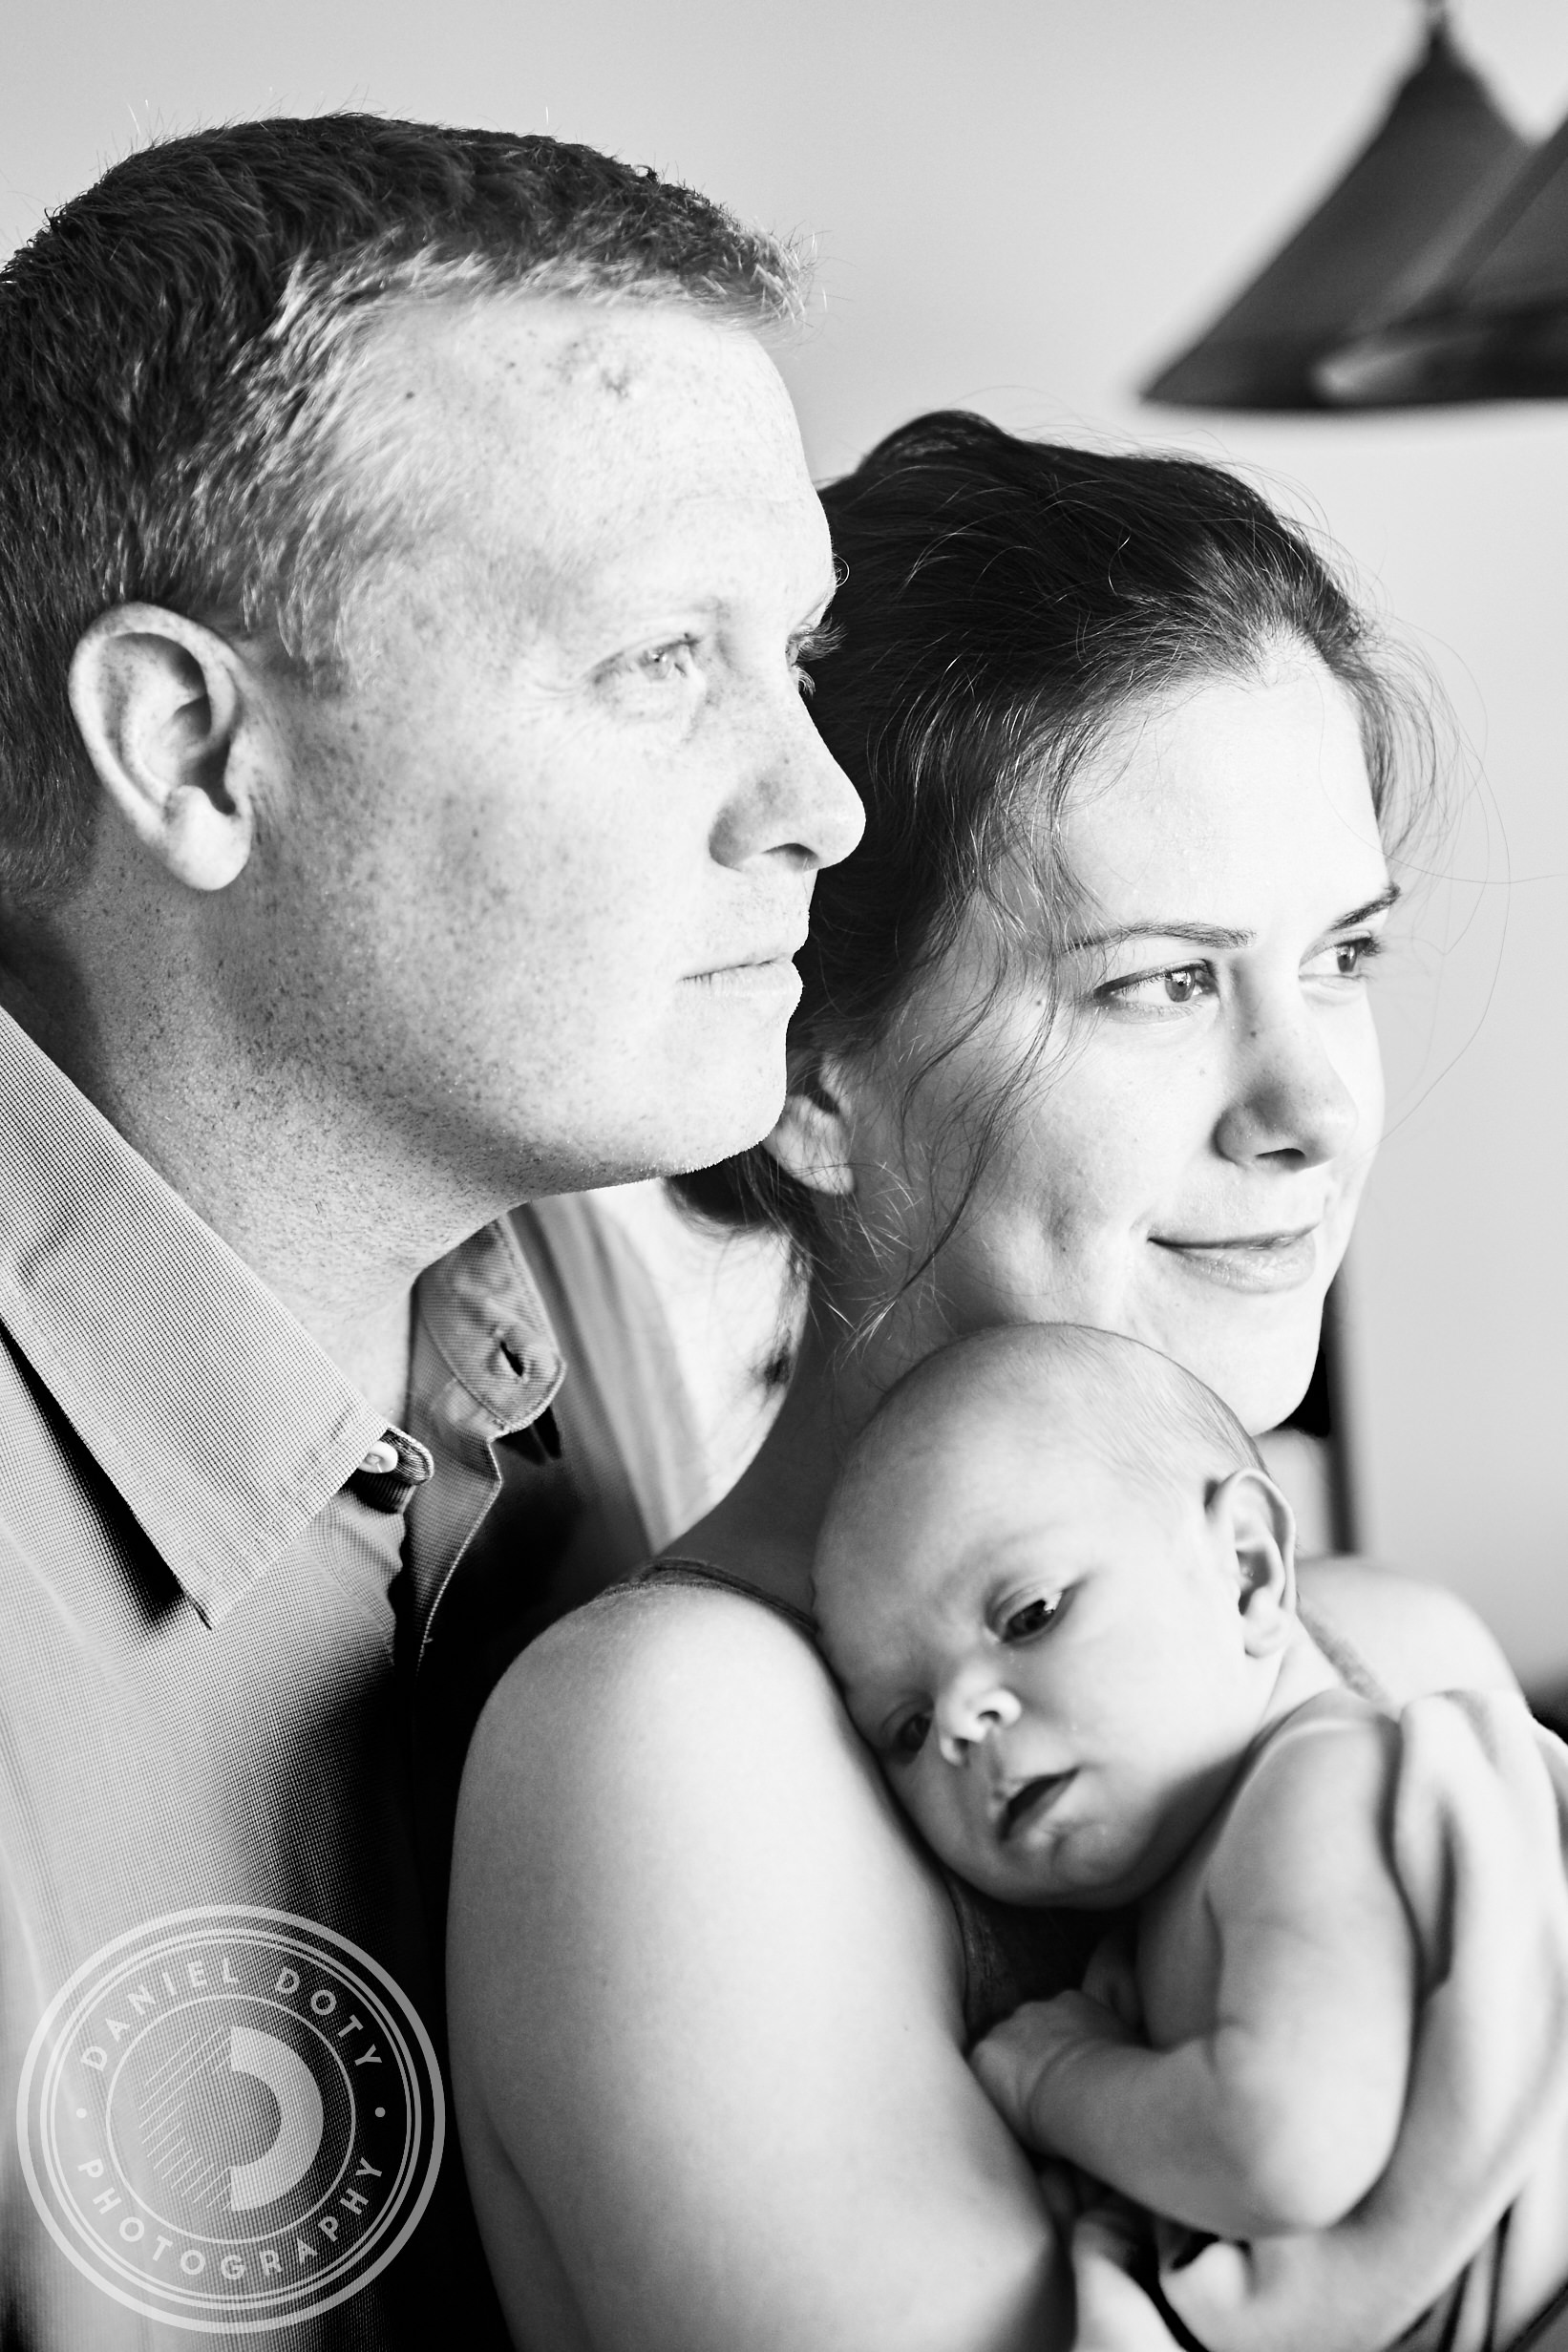 Newborn photography images from El Segundo CA Boutique wedding and portrait photography business Daniel Doty Photography.